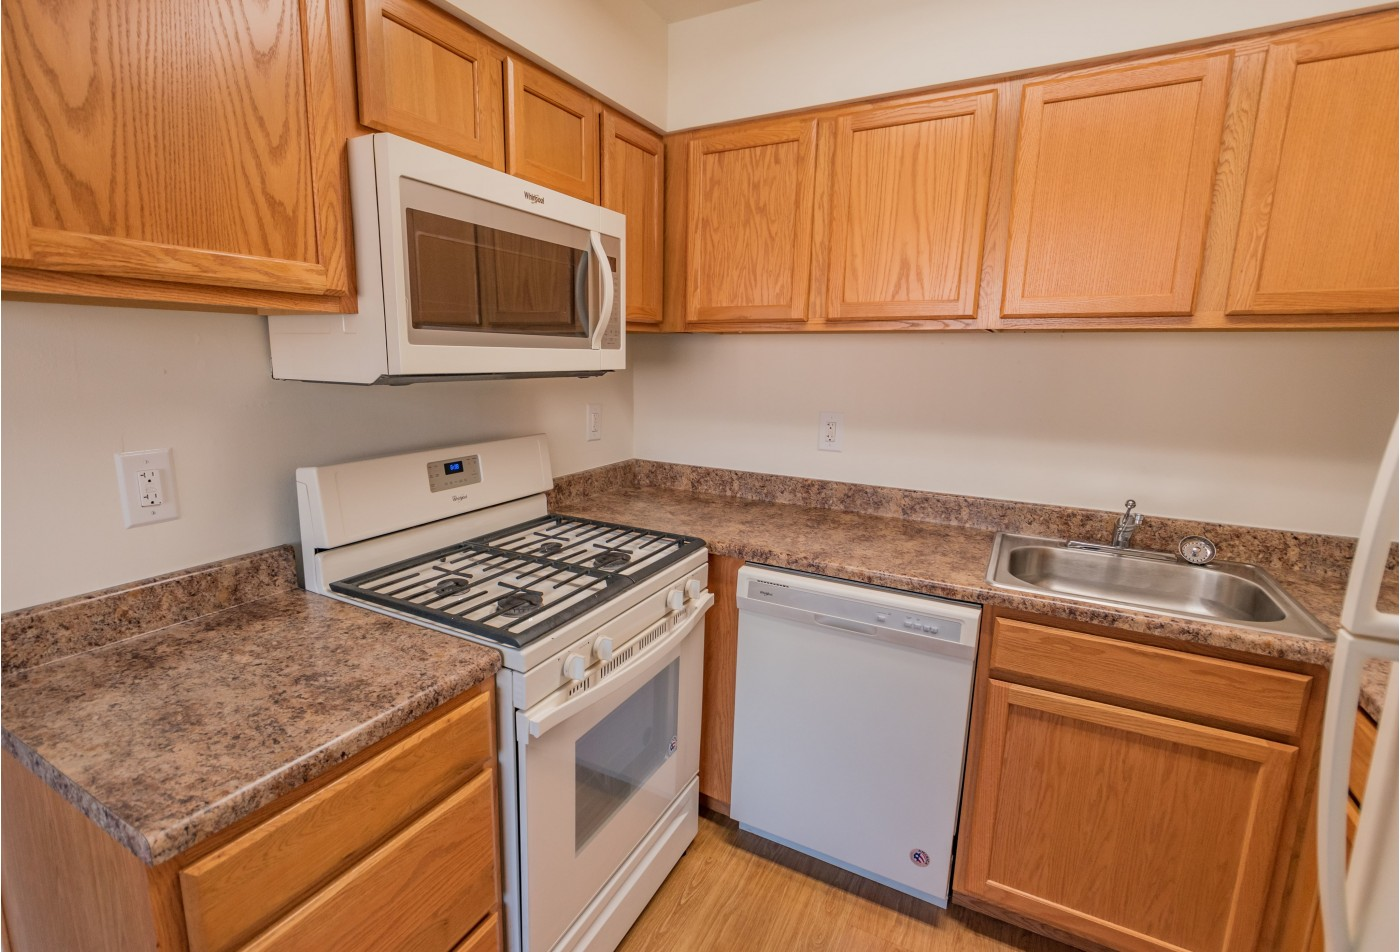 State-of-the-Art Kitchen   Penndel PA Apartment Homes   Millcreek Village Apartments